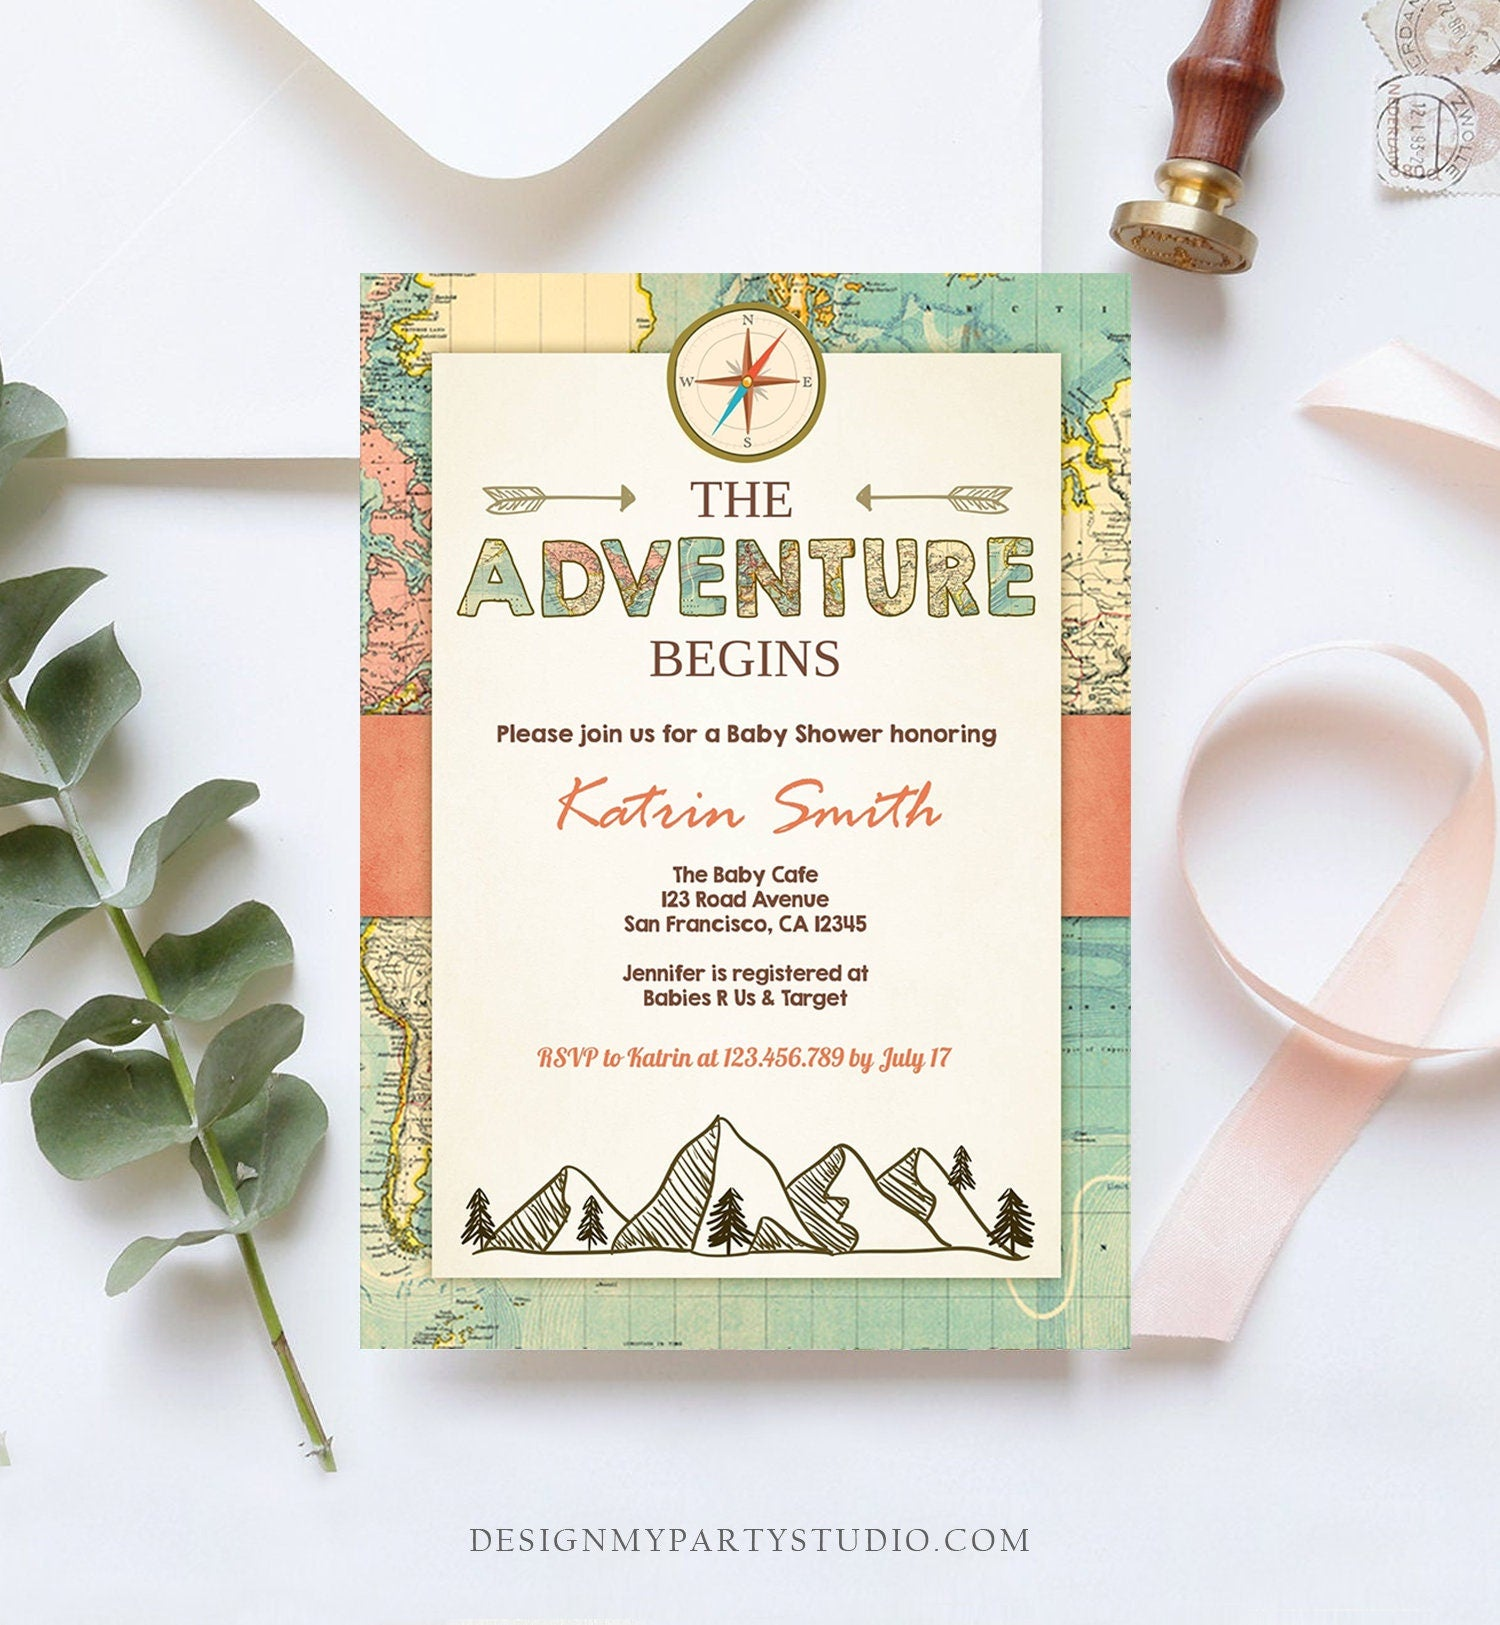 Editable Adventure Begins Baby Shower Invitation Forest Mountains Vintage World Map Travel Around Digital Corjl Template Printable 0044